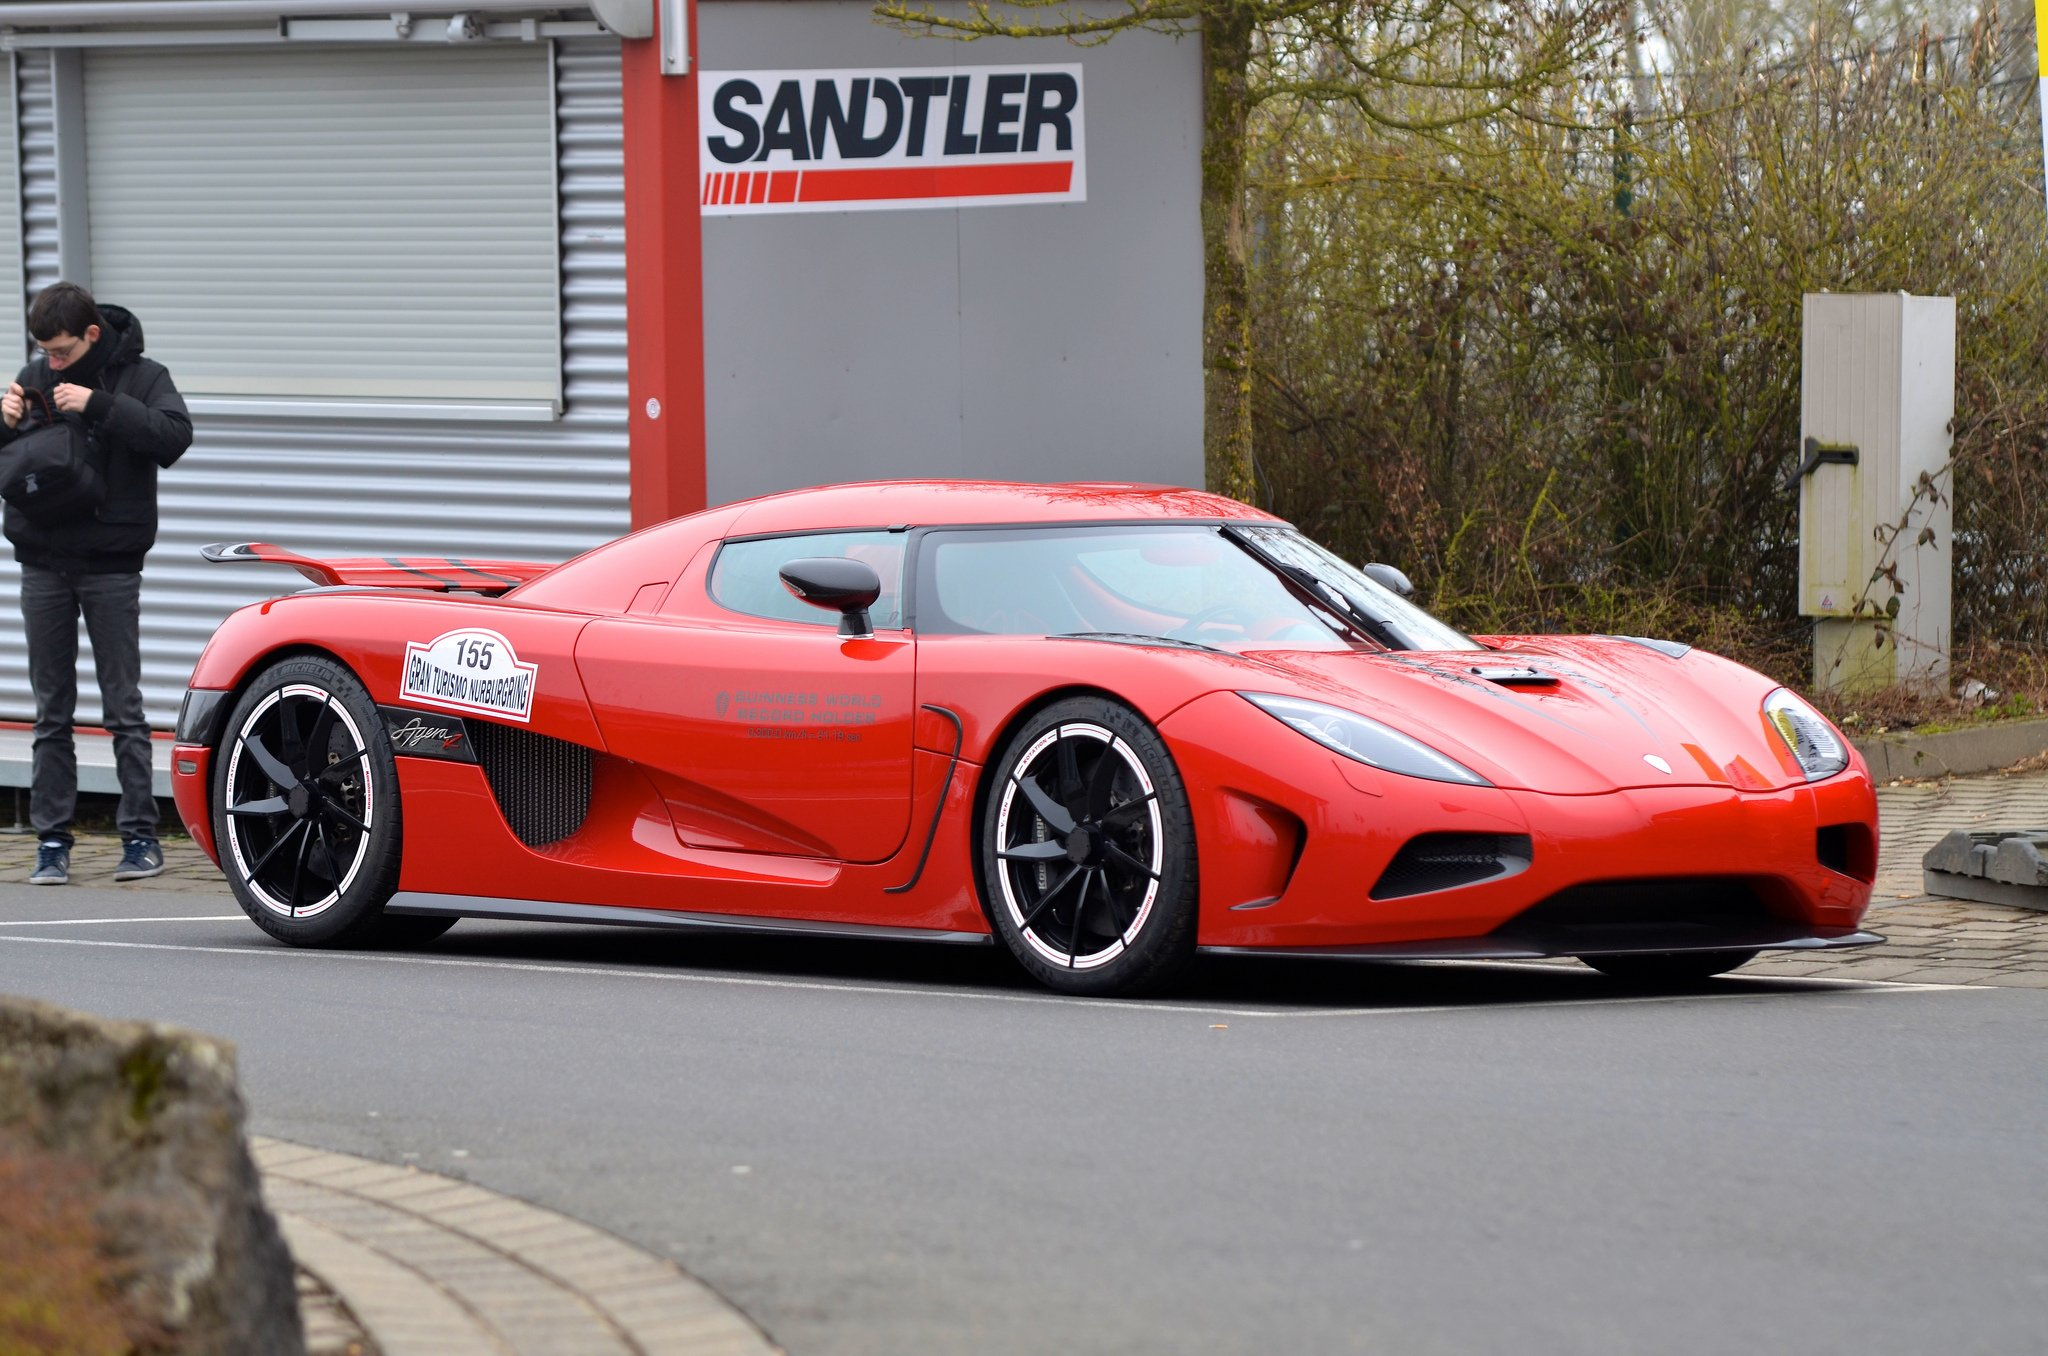 Wallpaper Dope Girls 2013 Agera R Koenigsegg Supercar Supercars Red Rouge Rosso